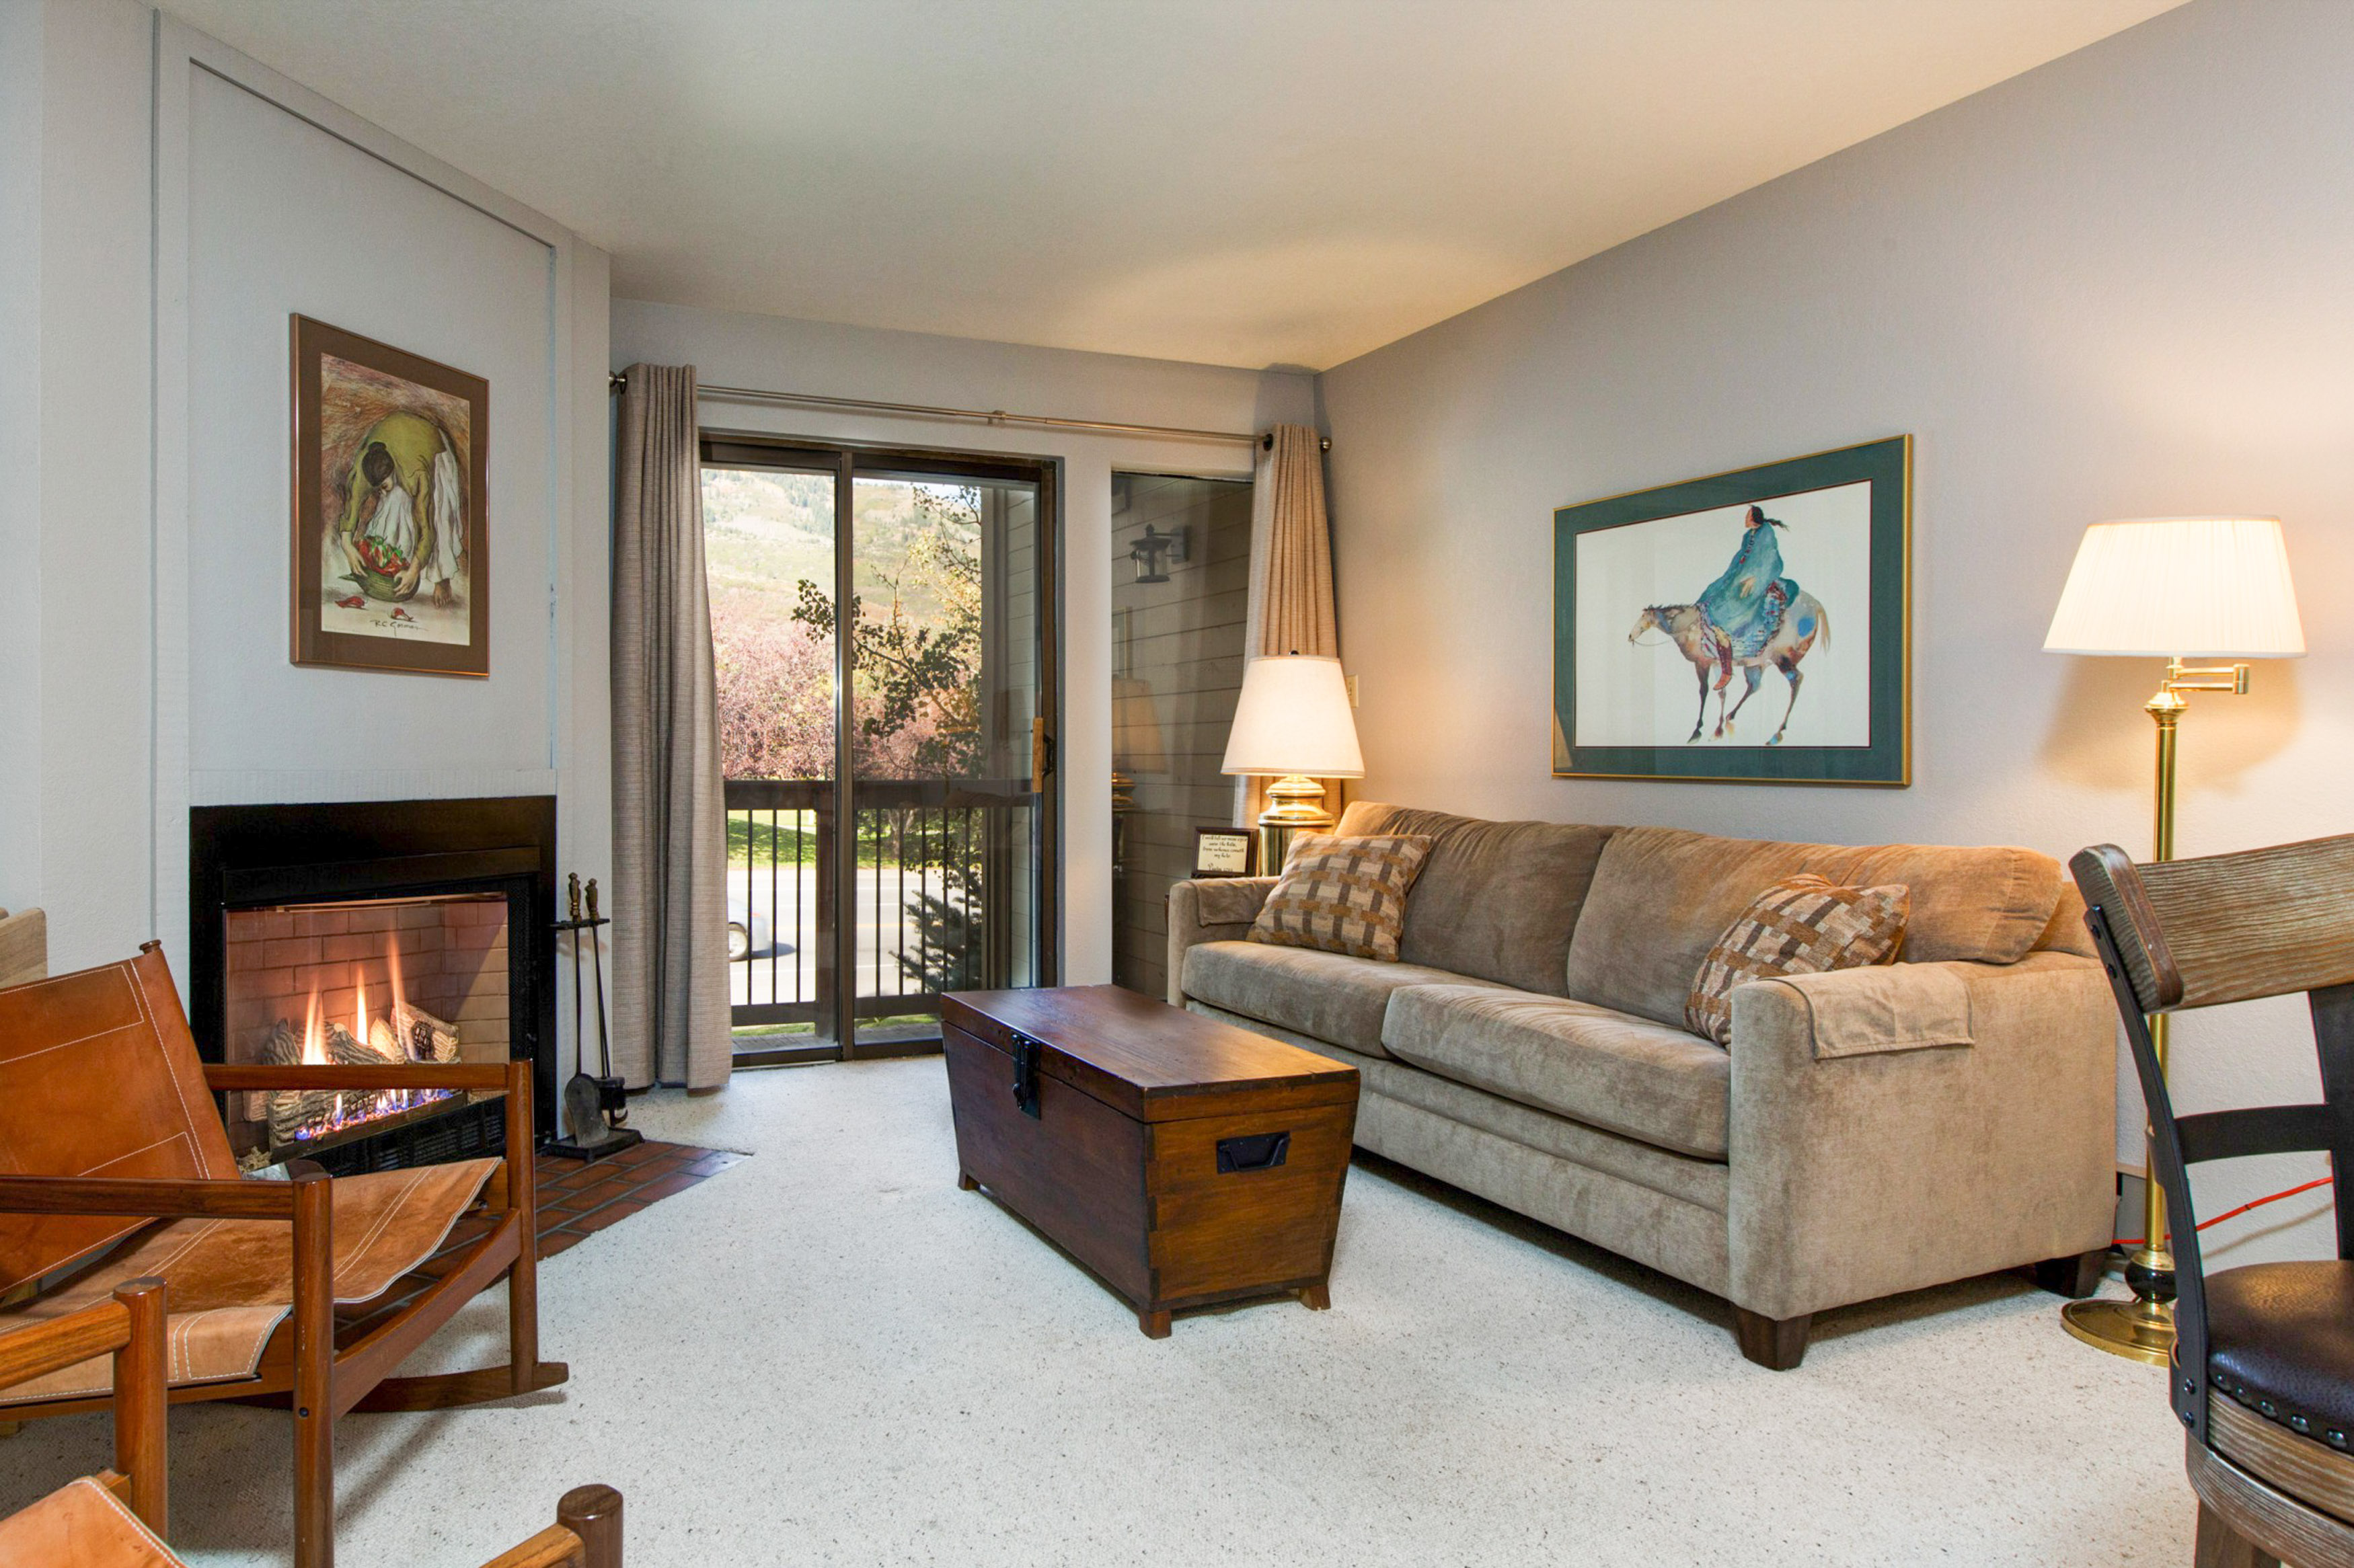 Park City UT Vacation Rental Welcome to Snowcrest